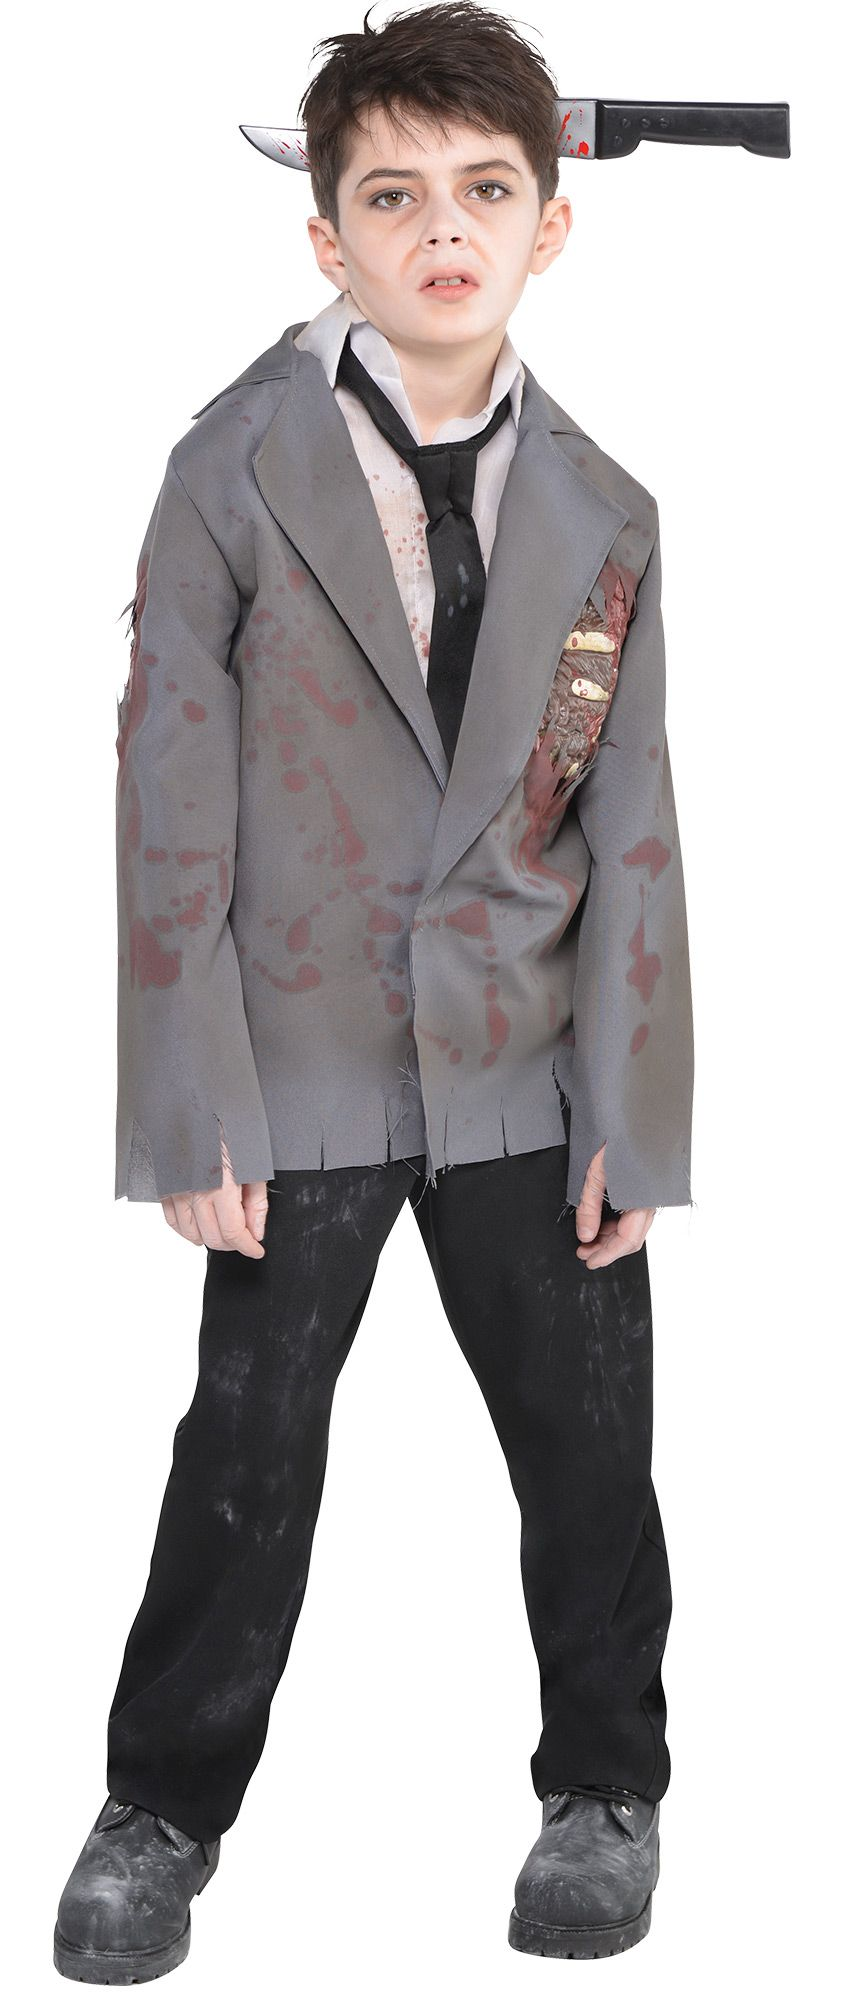 Create Your Look - Boys' Zombie